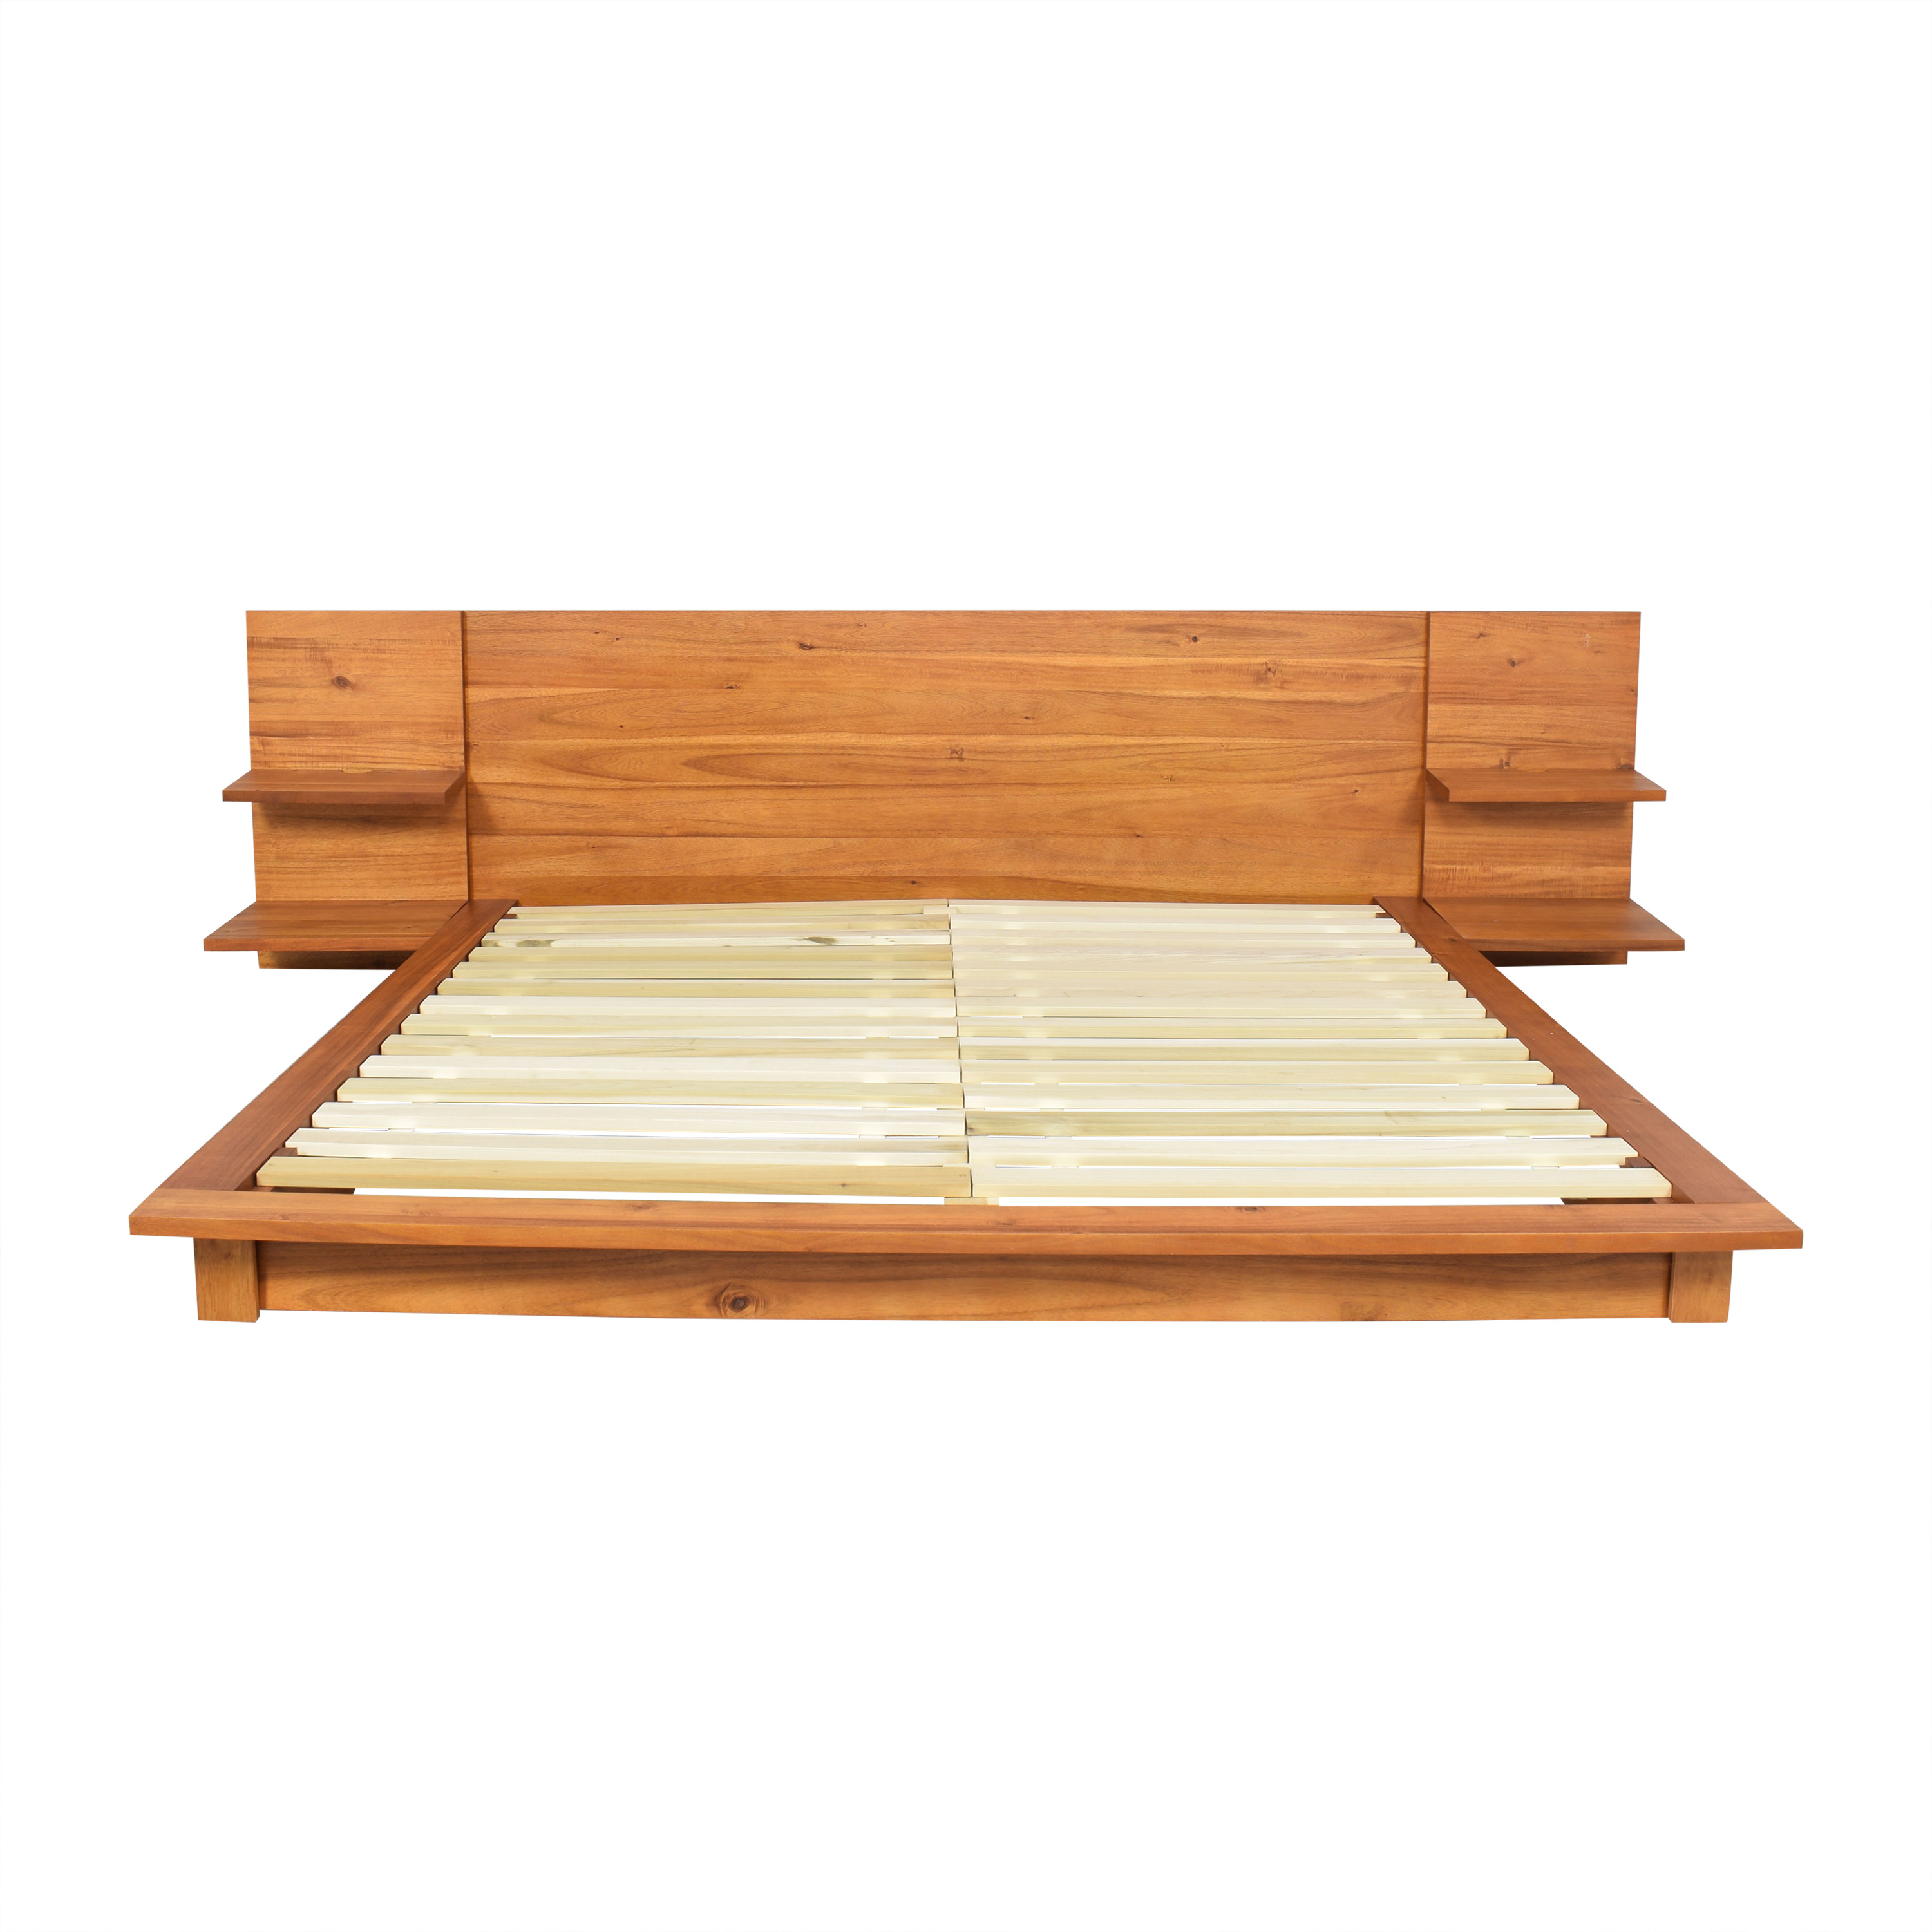 CB2 CB2 Andes King Bed ct